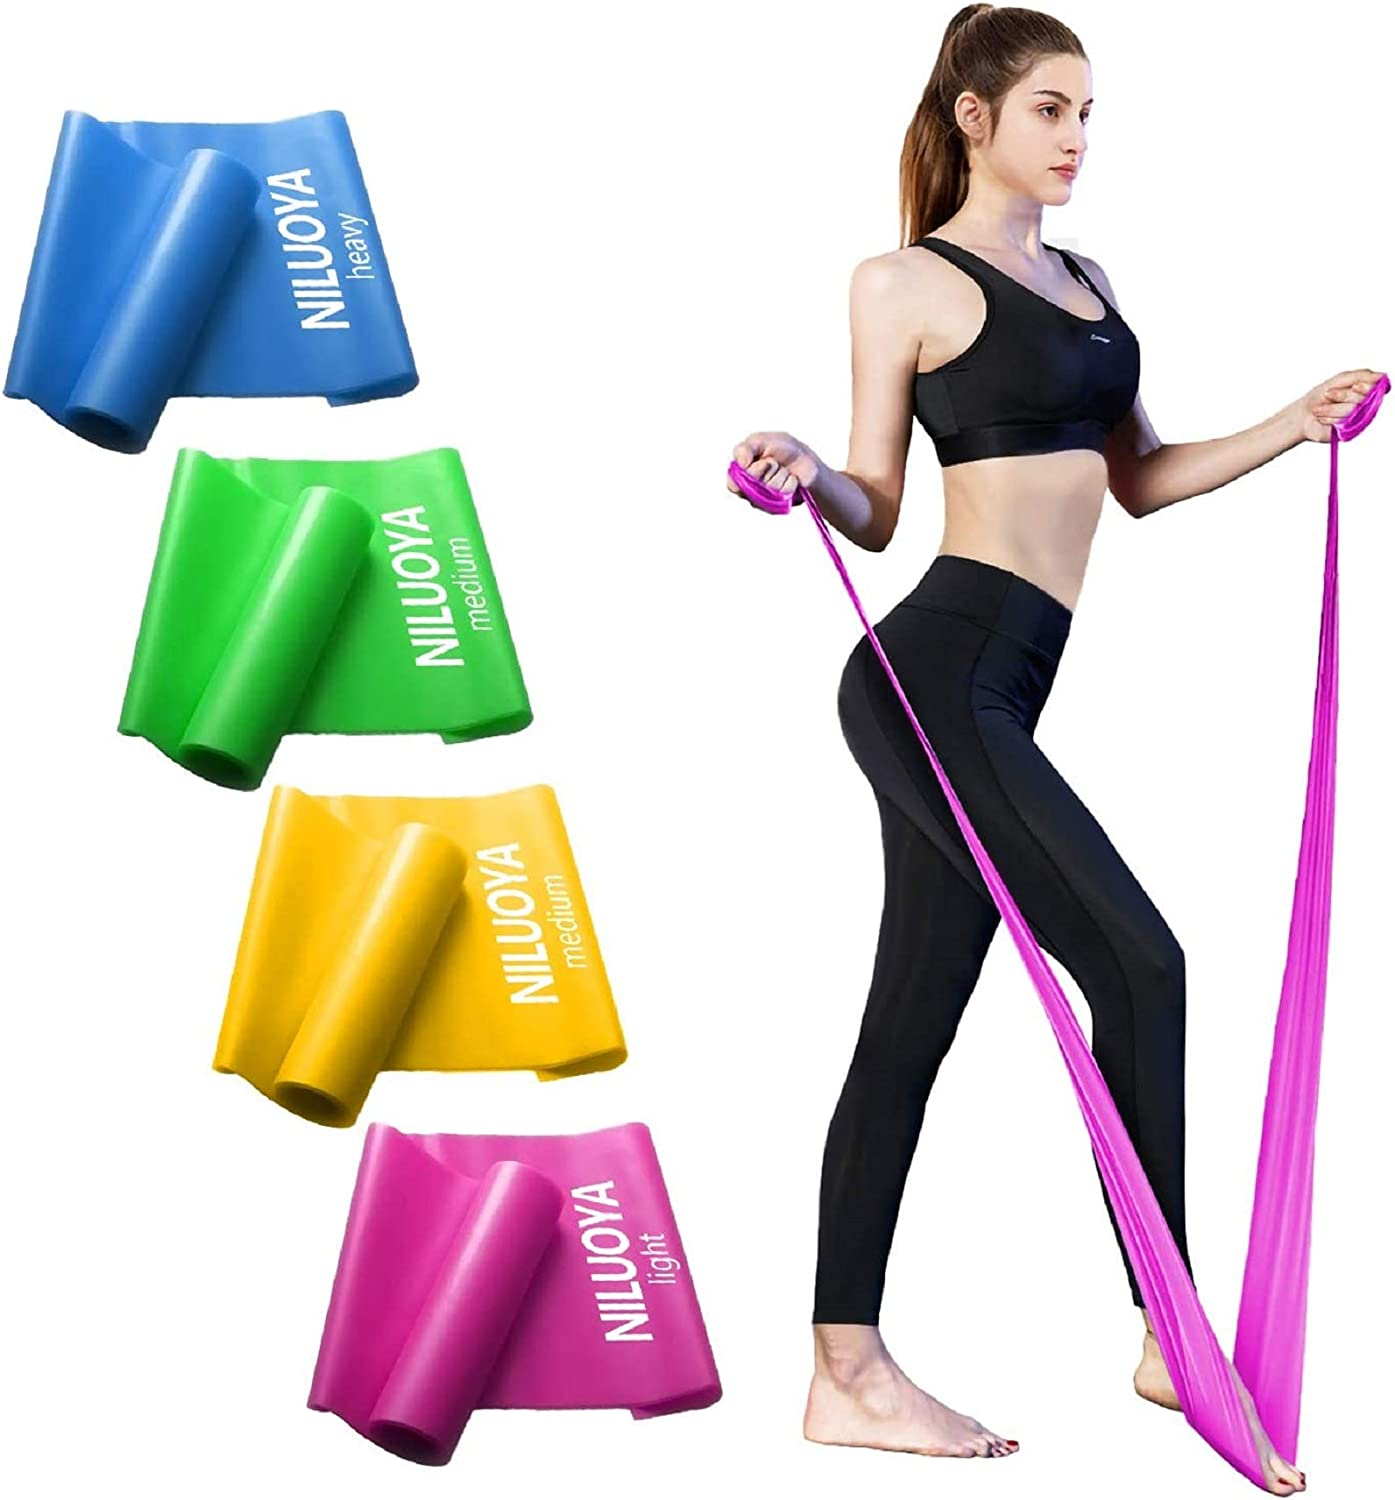 Niluoya Resistance Bands Set, 4 Pack Elastic Excersize Resistant Long Tension Band, Women Men Leg Arm Stretch Training for Home Workout, Yoga, Pilates, Fitness Exercise, Physical Therapy